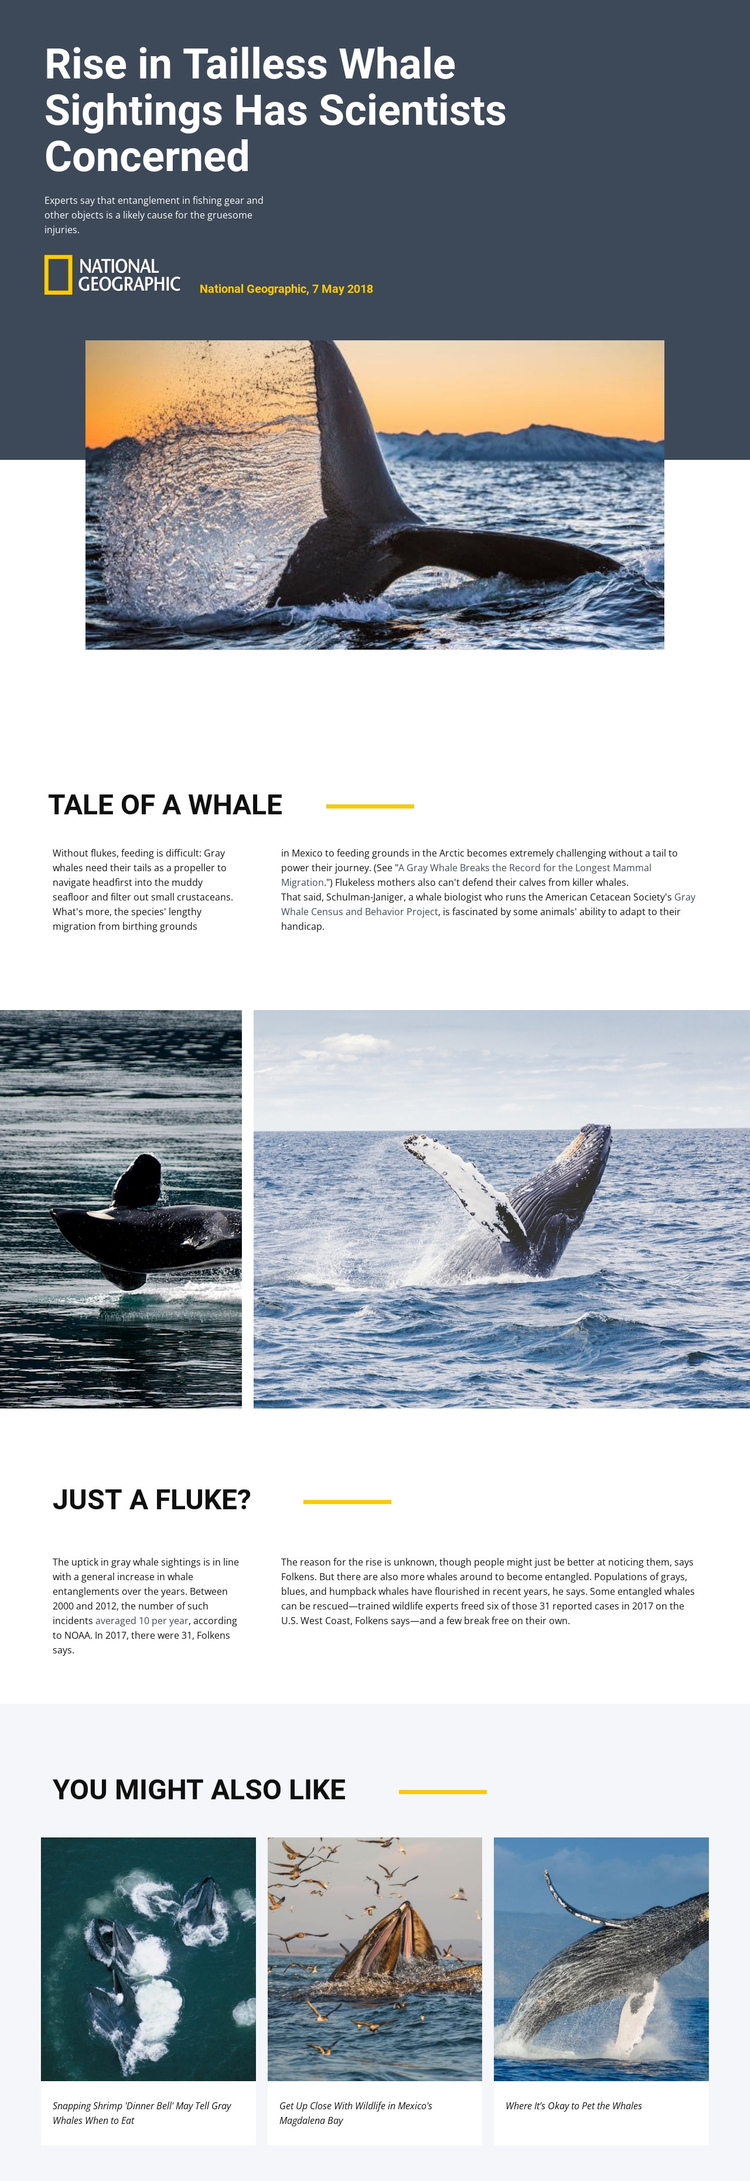 Whale watching center Website Builder Software